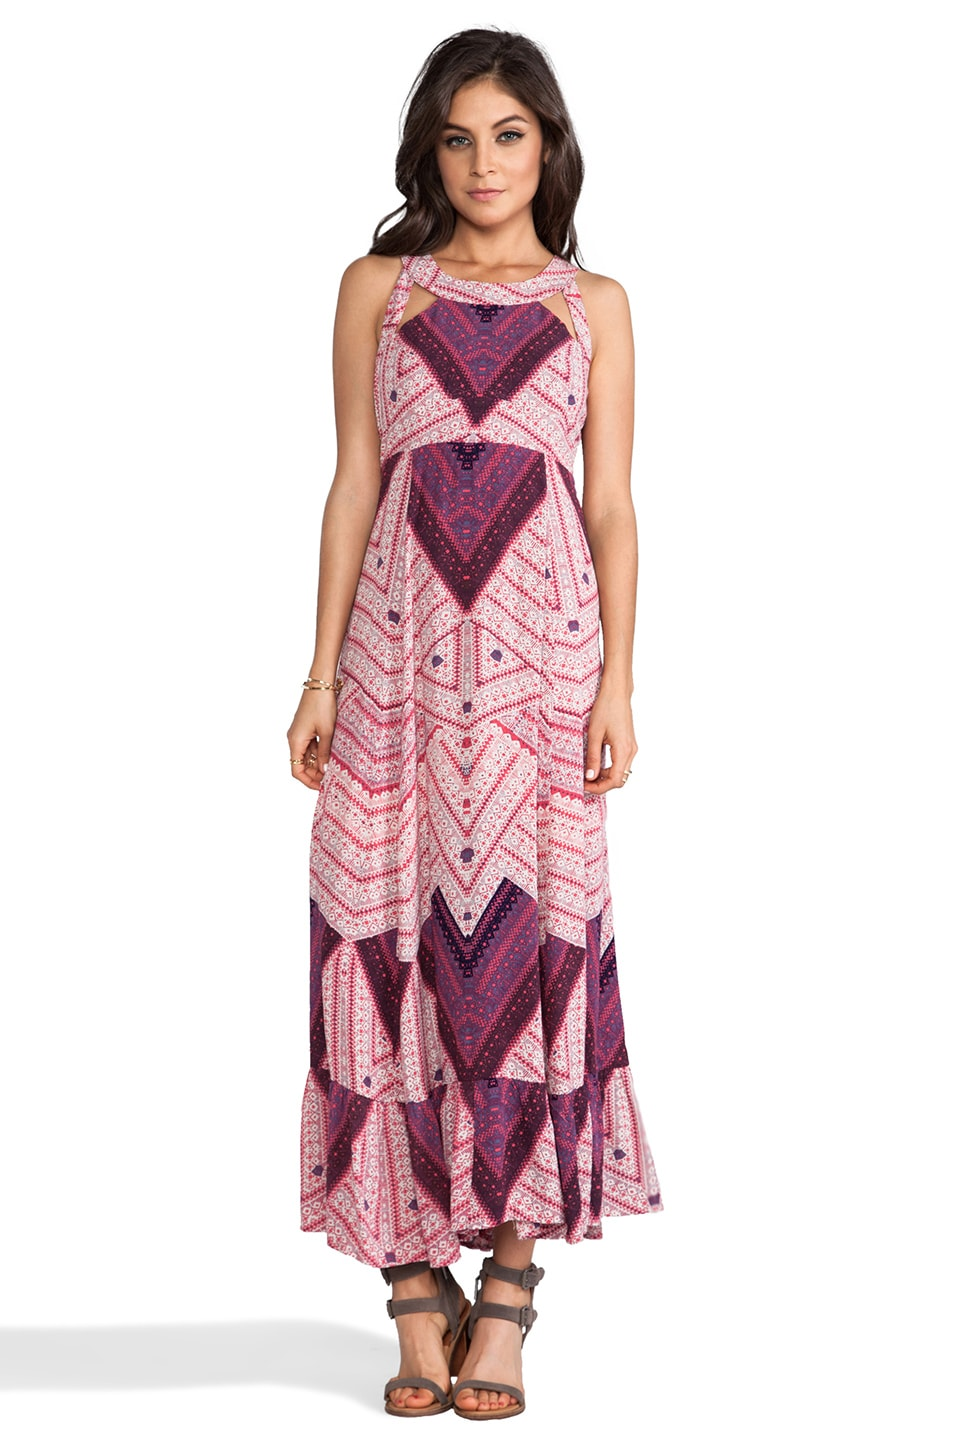 Free People You Made My Day Printed Dress in Wildflower Combo